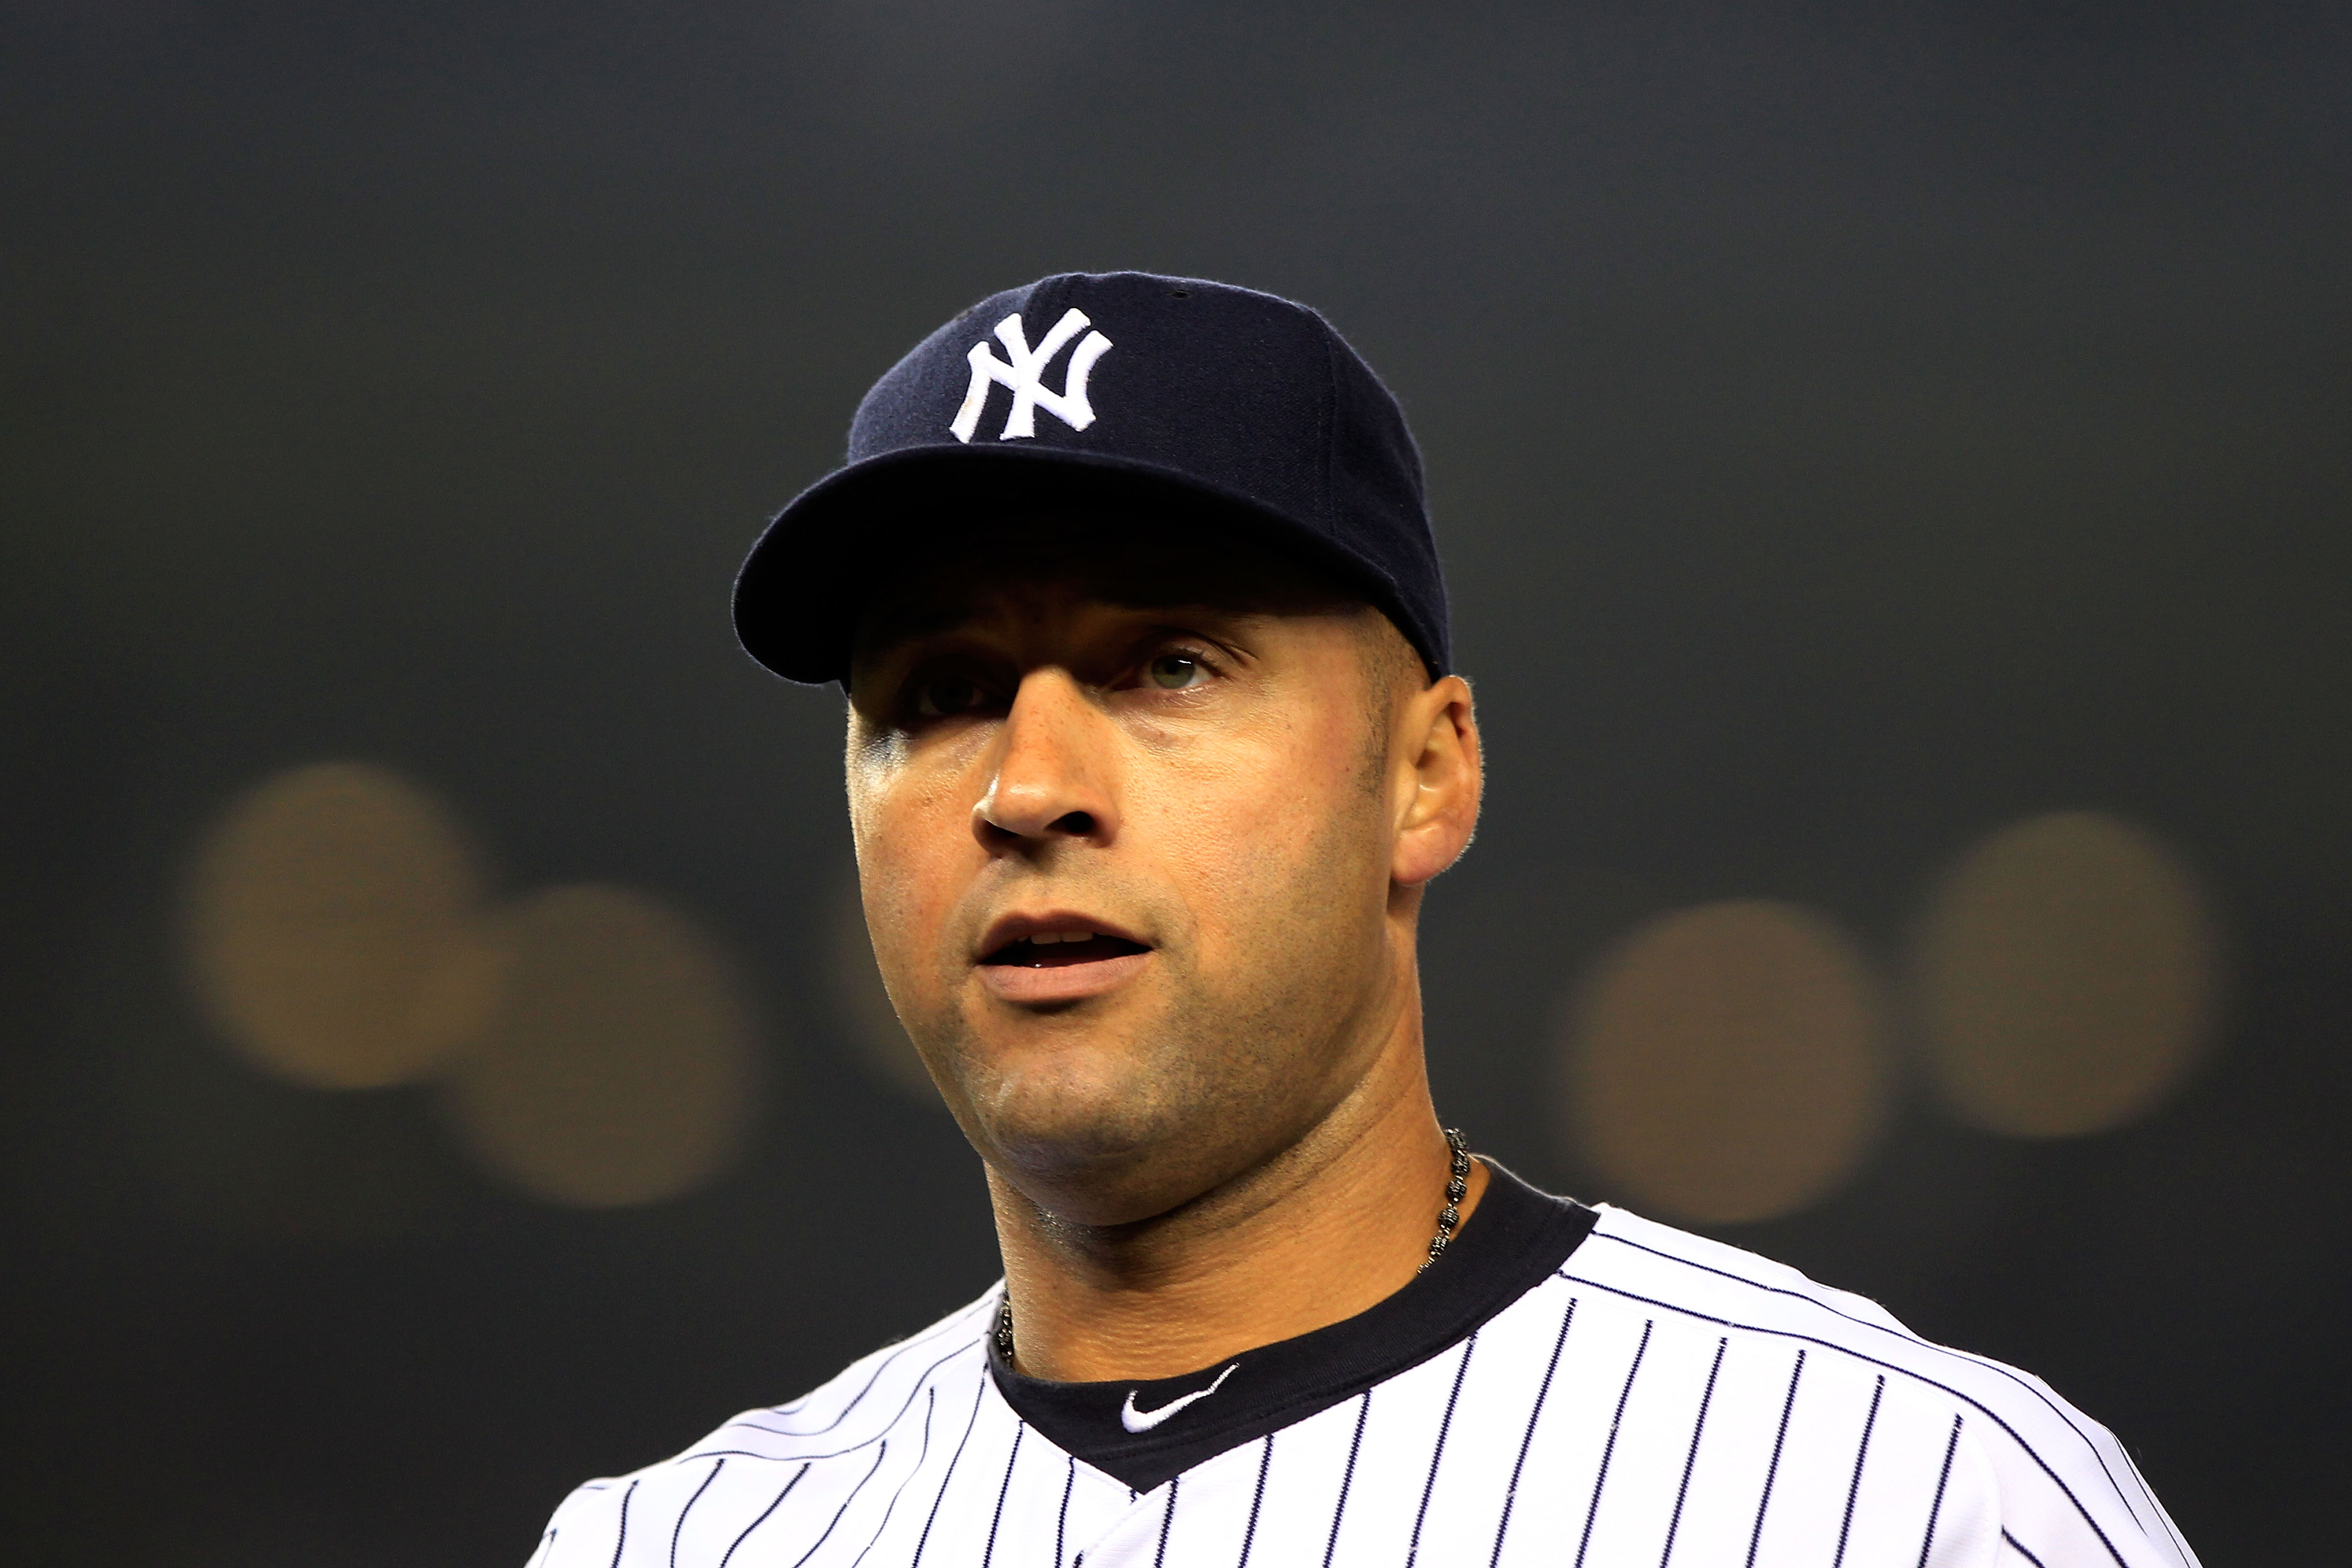 NEW YORK, NY - APRIL 25:  Derek Jeter #2 of the New York Yankees looks on from the field during the game against the Chicago White Sox at Yankee Stadium on April 25, 2011 in the Bronx borough of New York City.  (Photo by Chris Trotman/Getty Images)